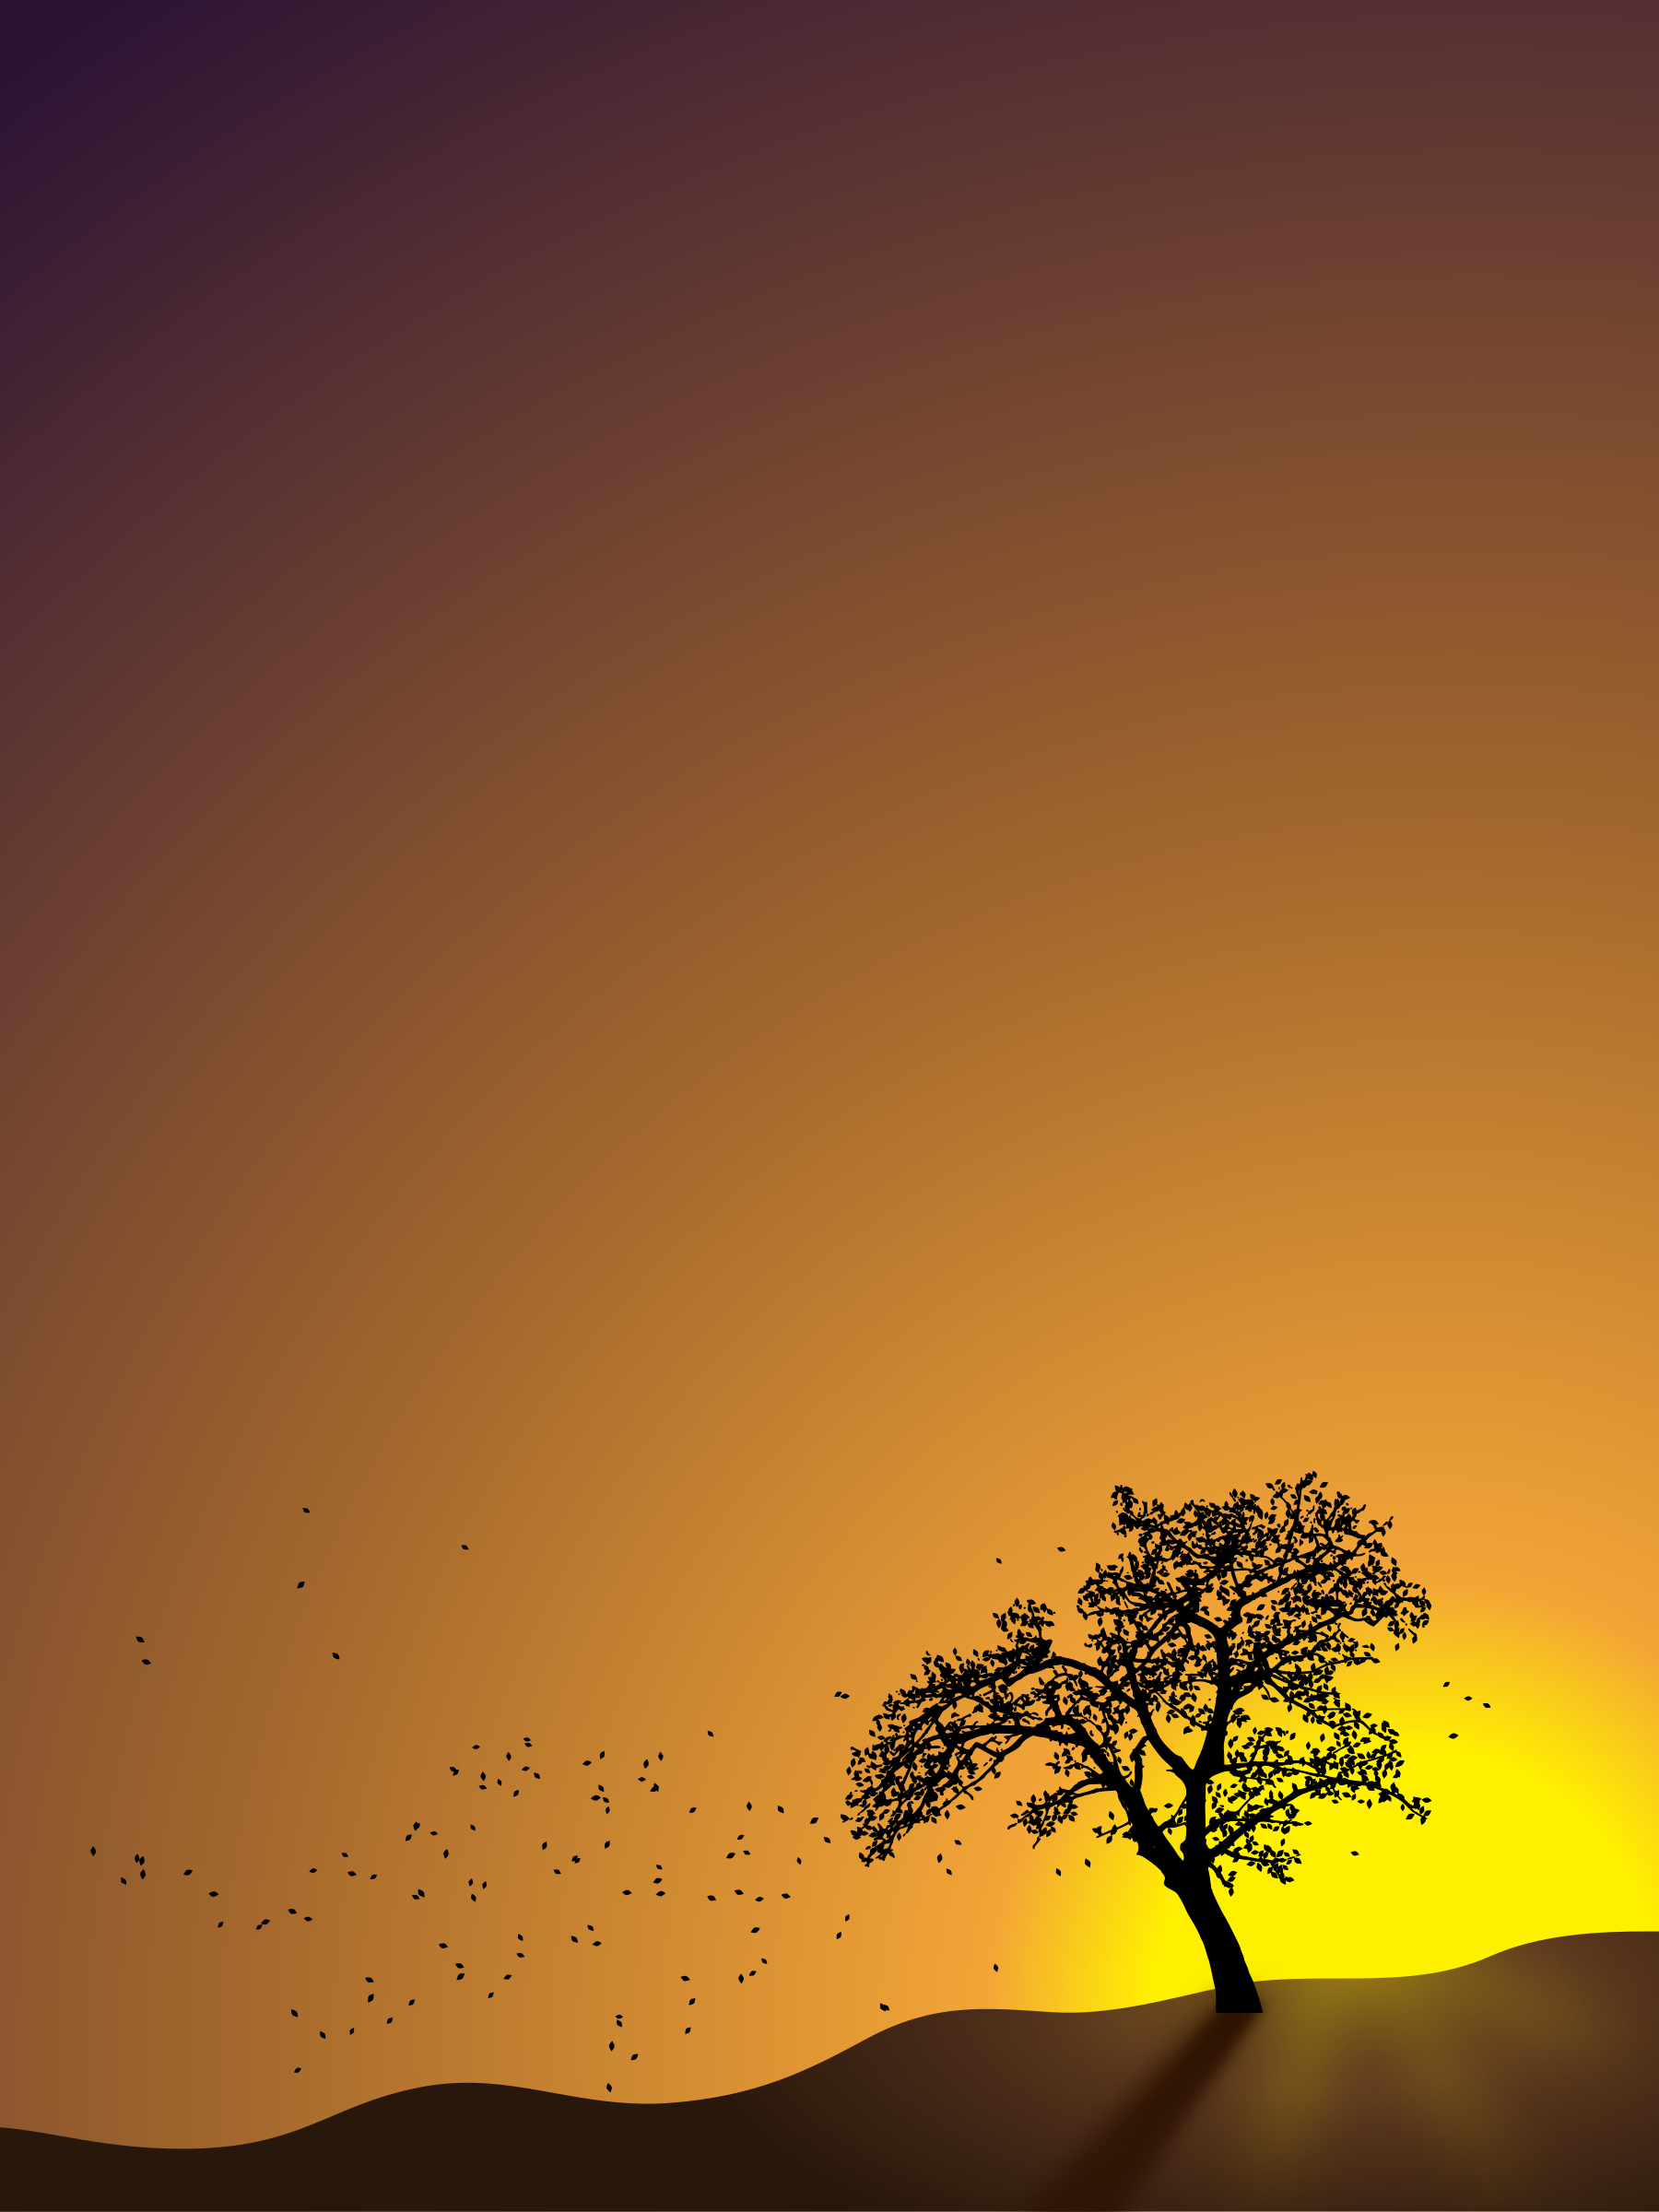 Tree in Sunset by Tomas Sobek